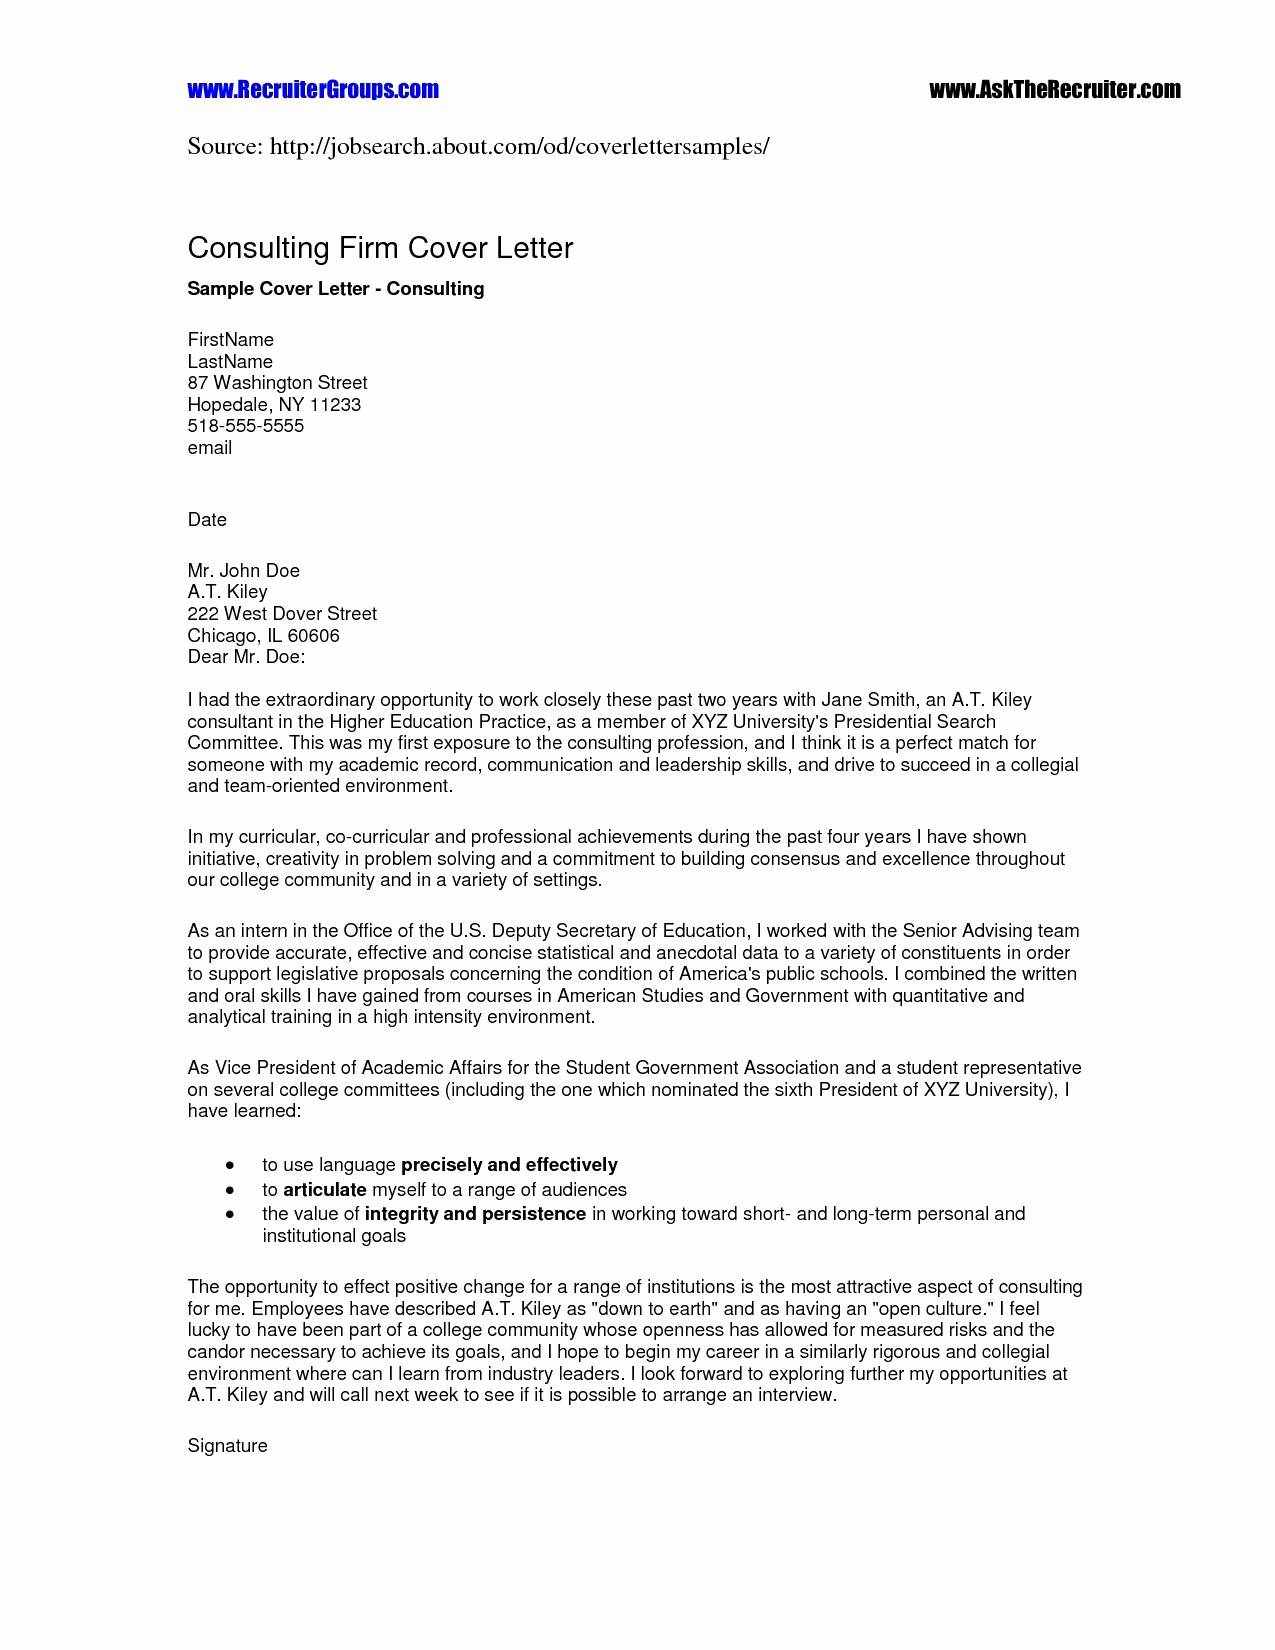 Easy Cover Letter Template Free Samples | Letter Cover Templates